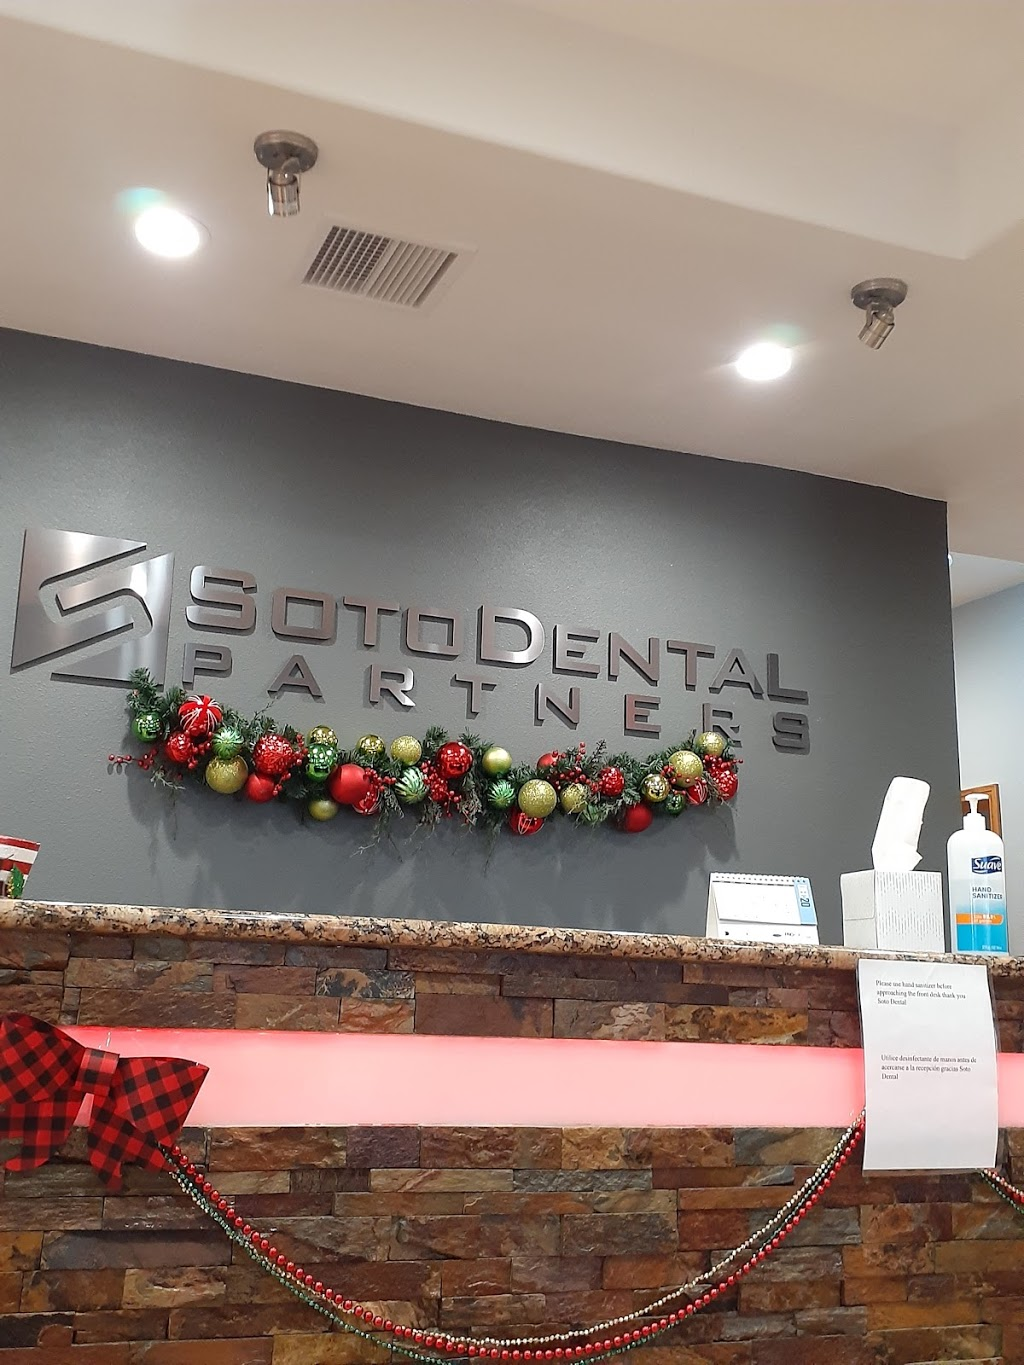 Obed Soto D.D.S. & Abigail Soto D.D.S. - dentist  | Photo 4 of 5 | Address: 11125 La Quinta Pl STE D, El Paso, TX 79936, USA | Phone: (915) 779-2621